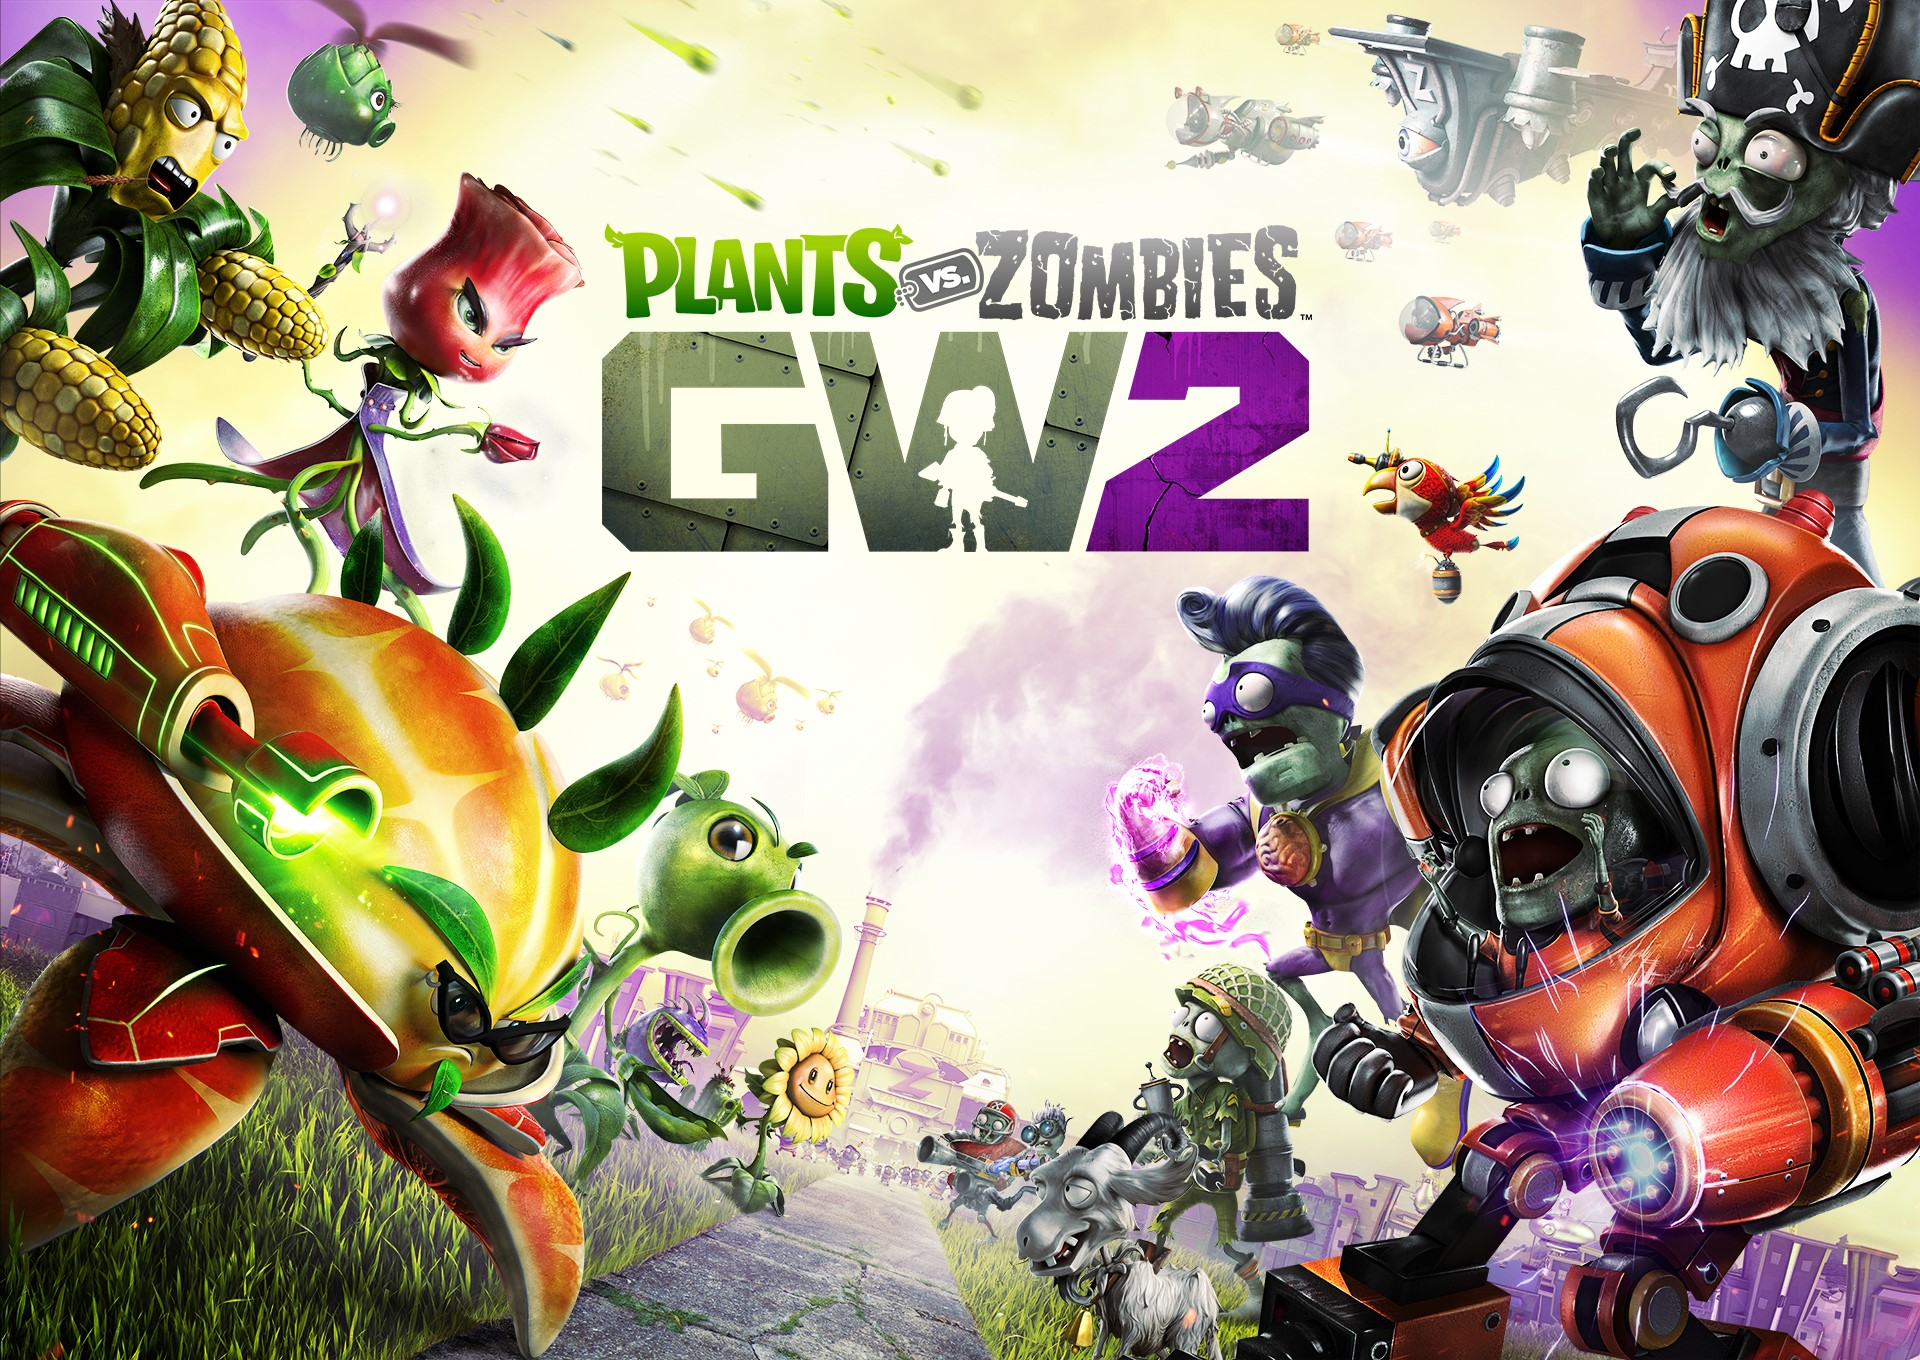 Plants vs Zombies garden warfare 2 [ Origin Аккаунт ]